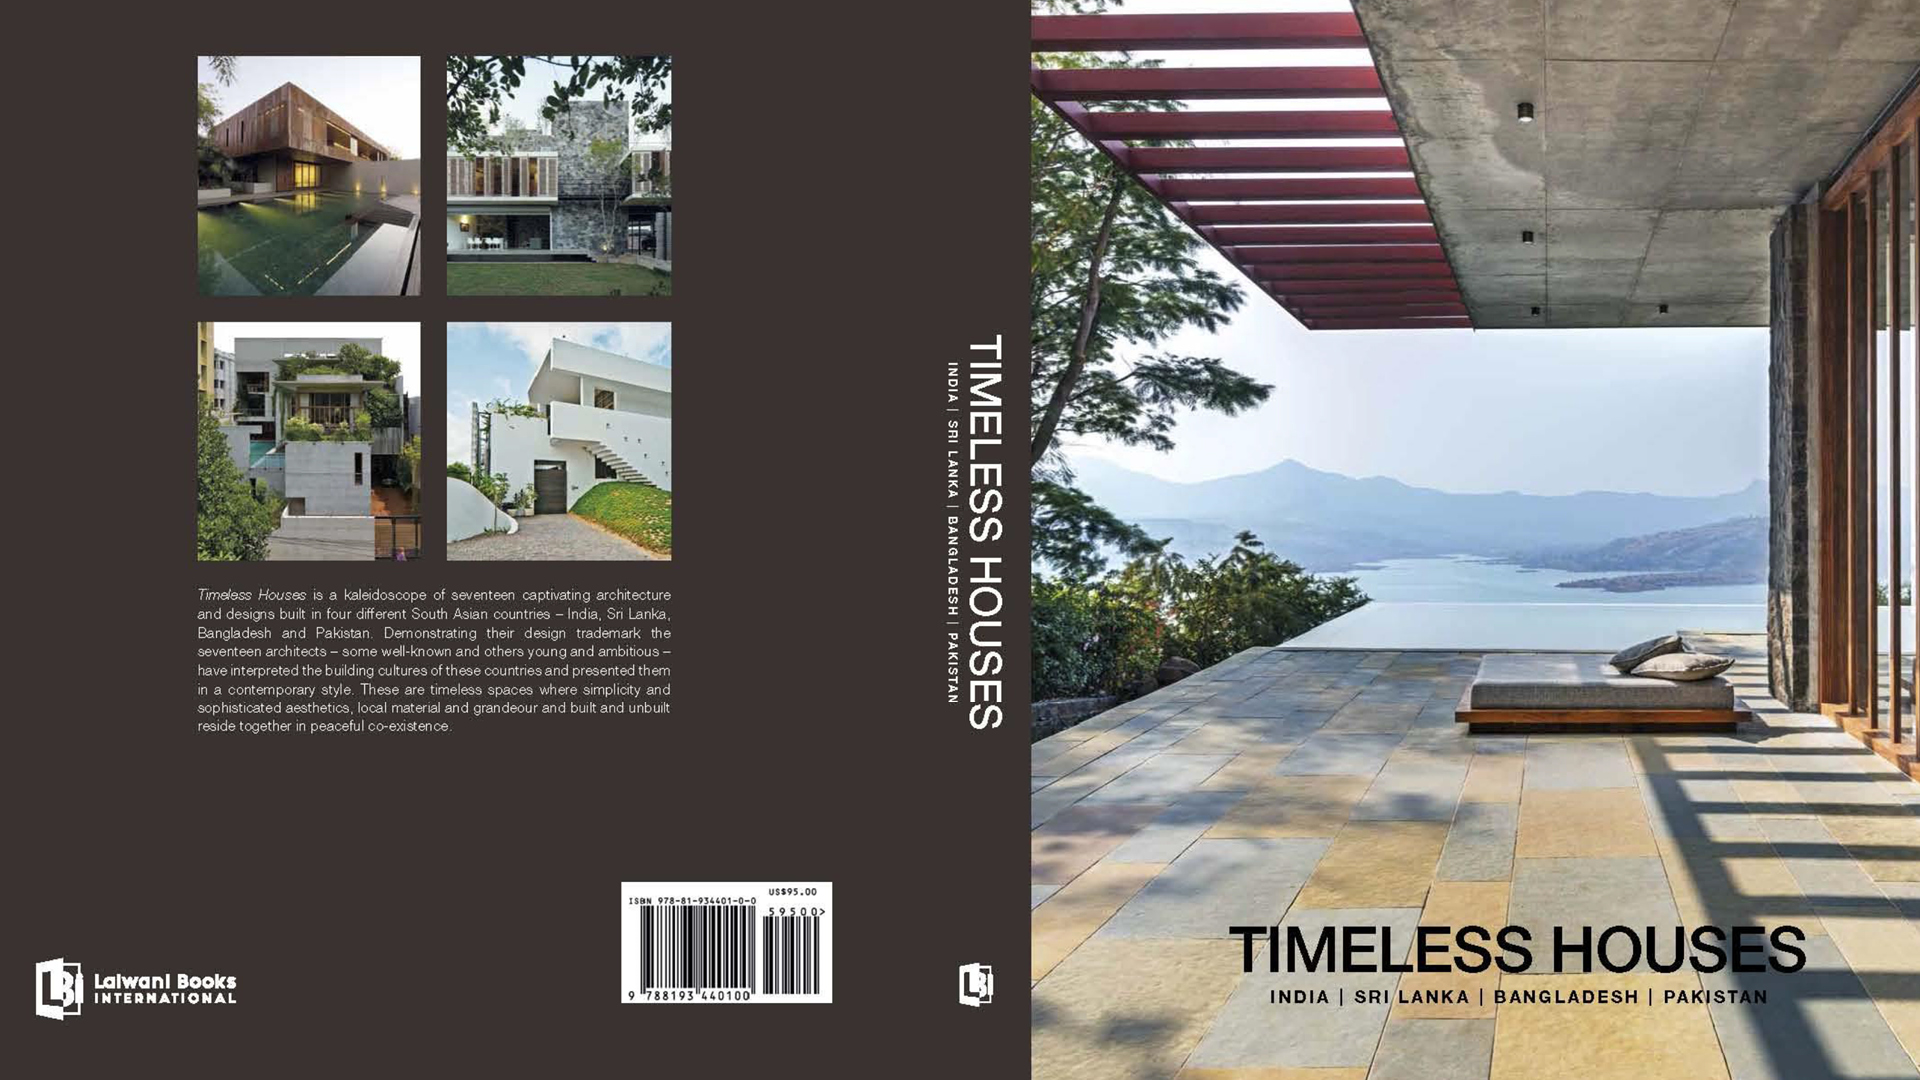 Timeless Houses by Kapil Aggarwal